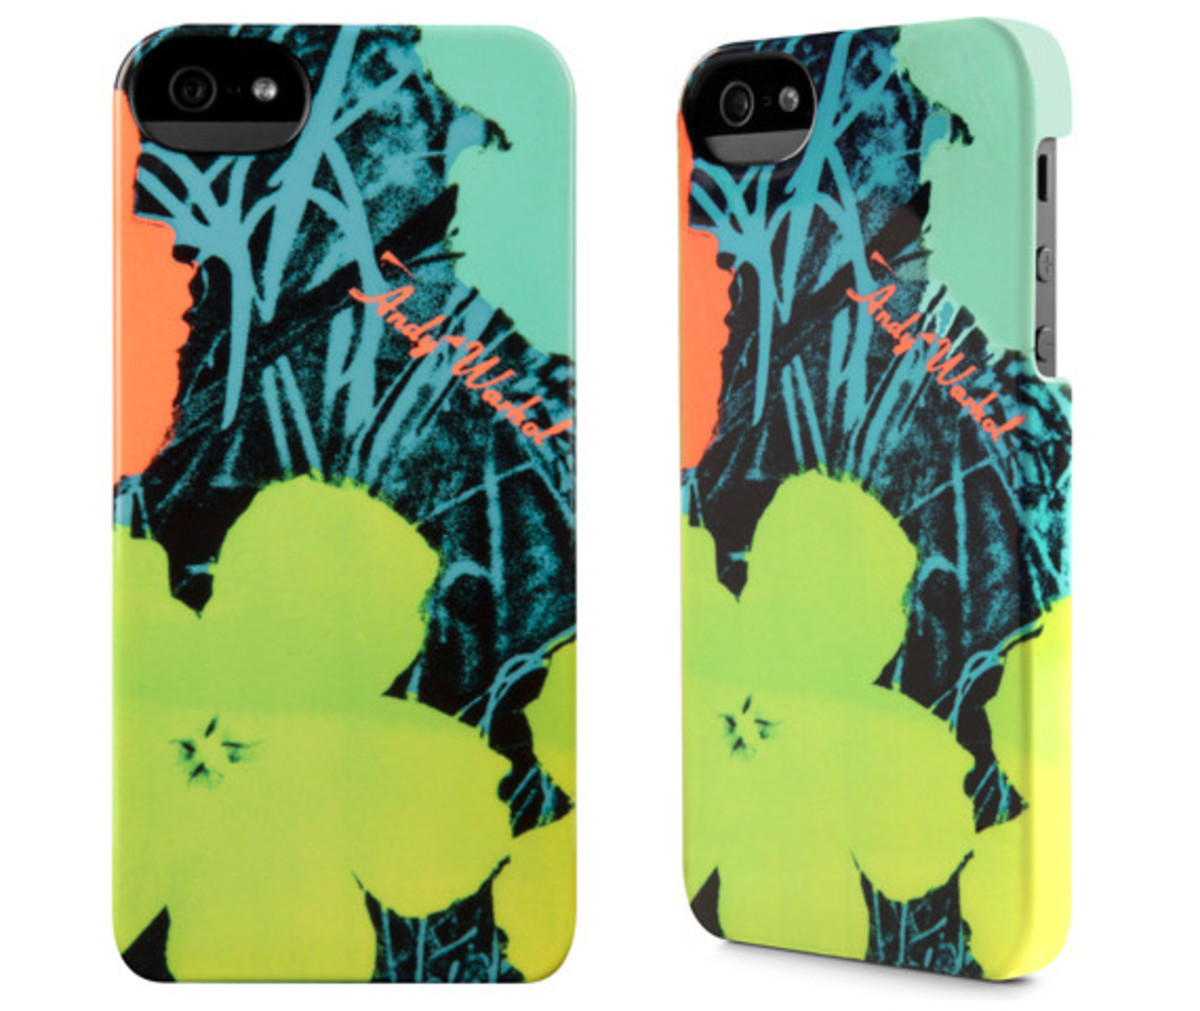 incase-for-andy-warhol-collection-iphone-5-cases-04